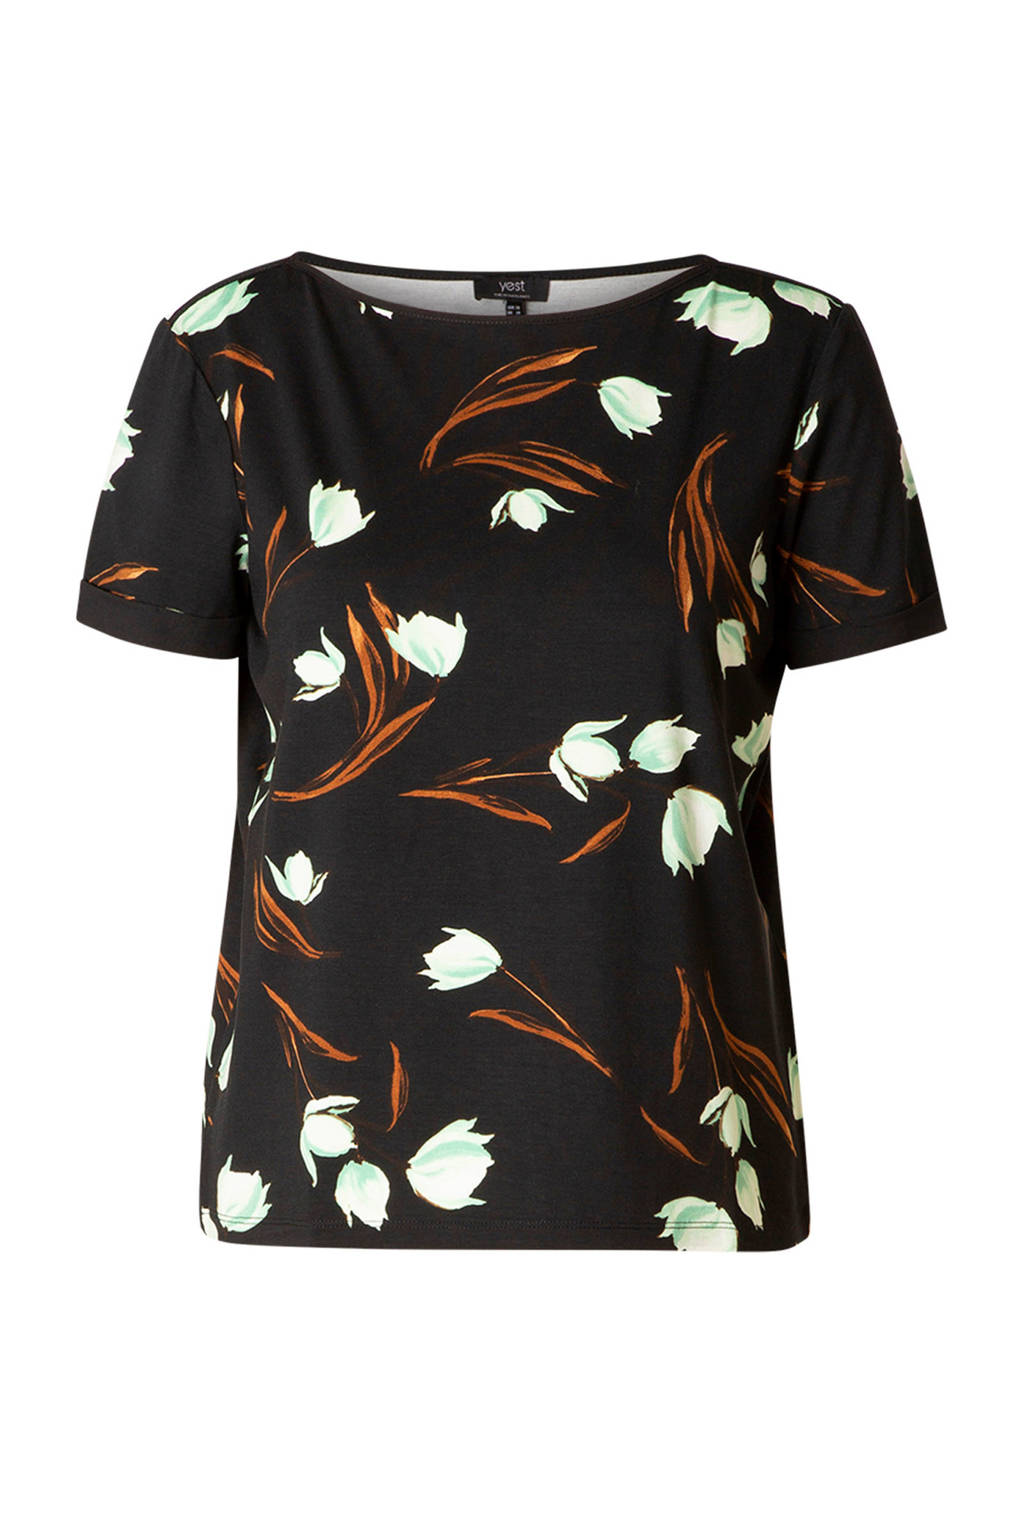 Yesta T-shirt met all over print zwart/wit/oranje, Zwart/wit/oranje